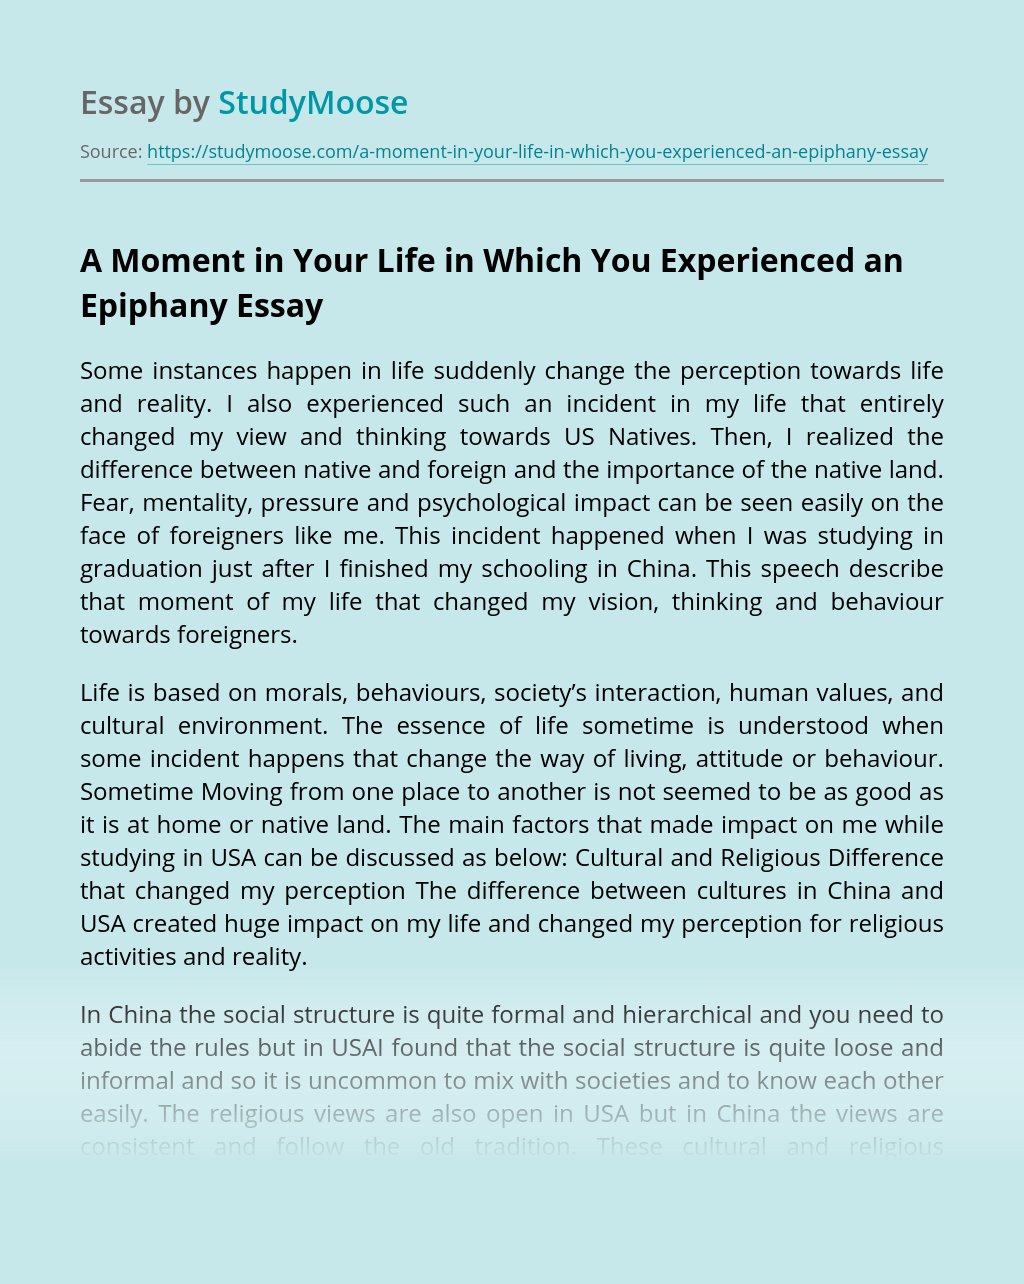 A Moment in Your Life in Which You Experienced an Epiphany